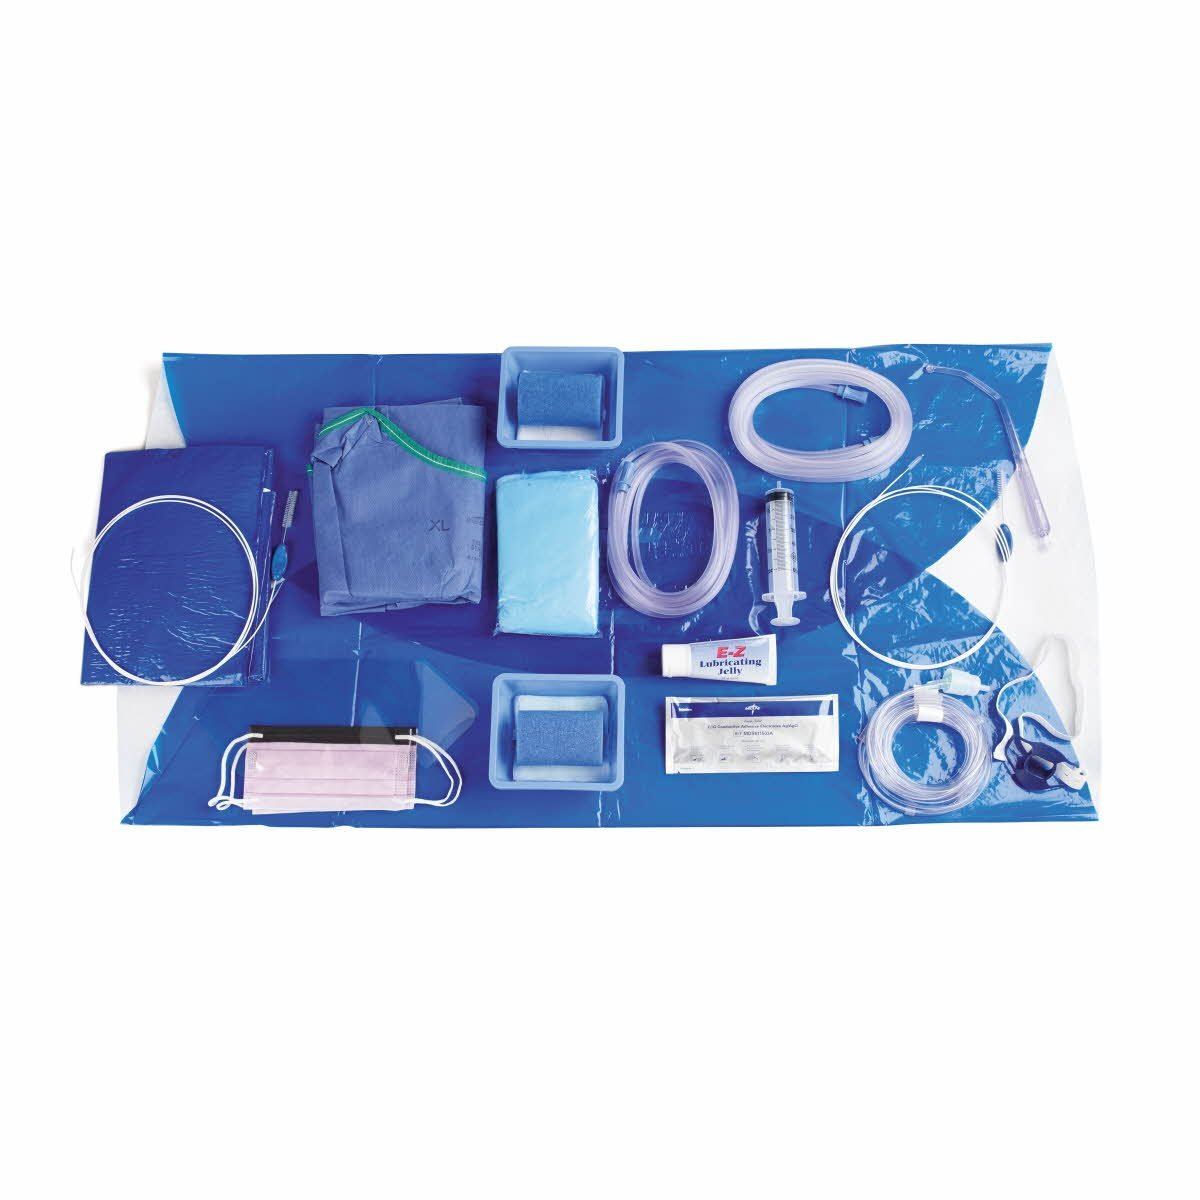 Medline Industries DYKENDODBCMP Endoscopy Double Complete Kit (Pack of 12)